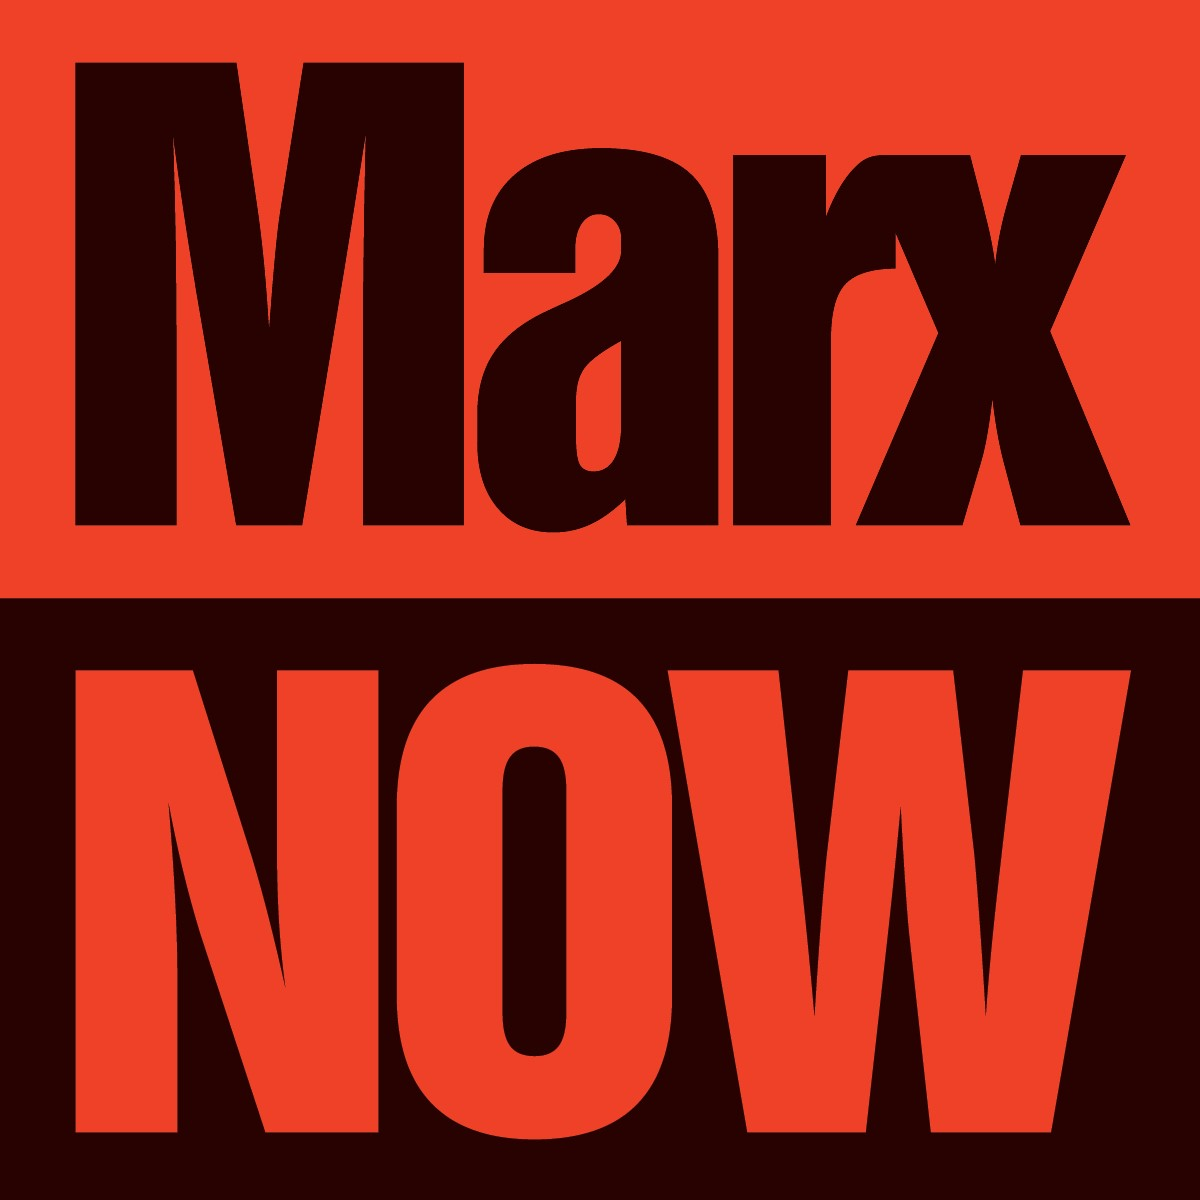 a research on marxism Research funding opportunities for underrepresented groups ens/paris 7 exchange liaison comittee marxism modernism, postmodernism & contemporaneity poetics.